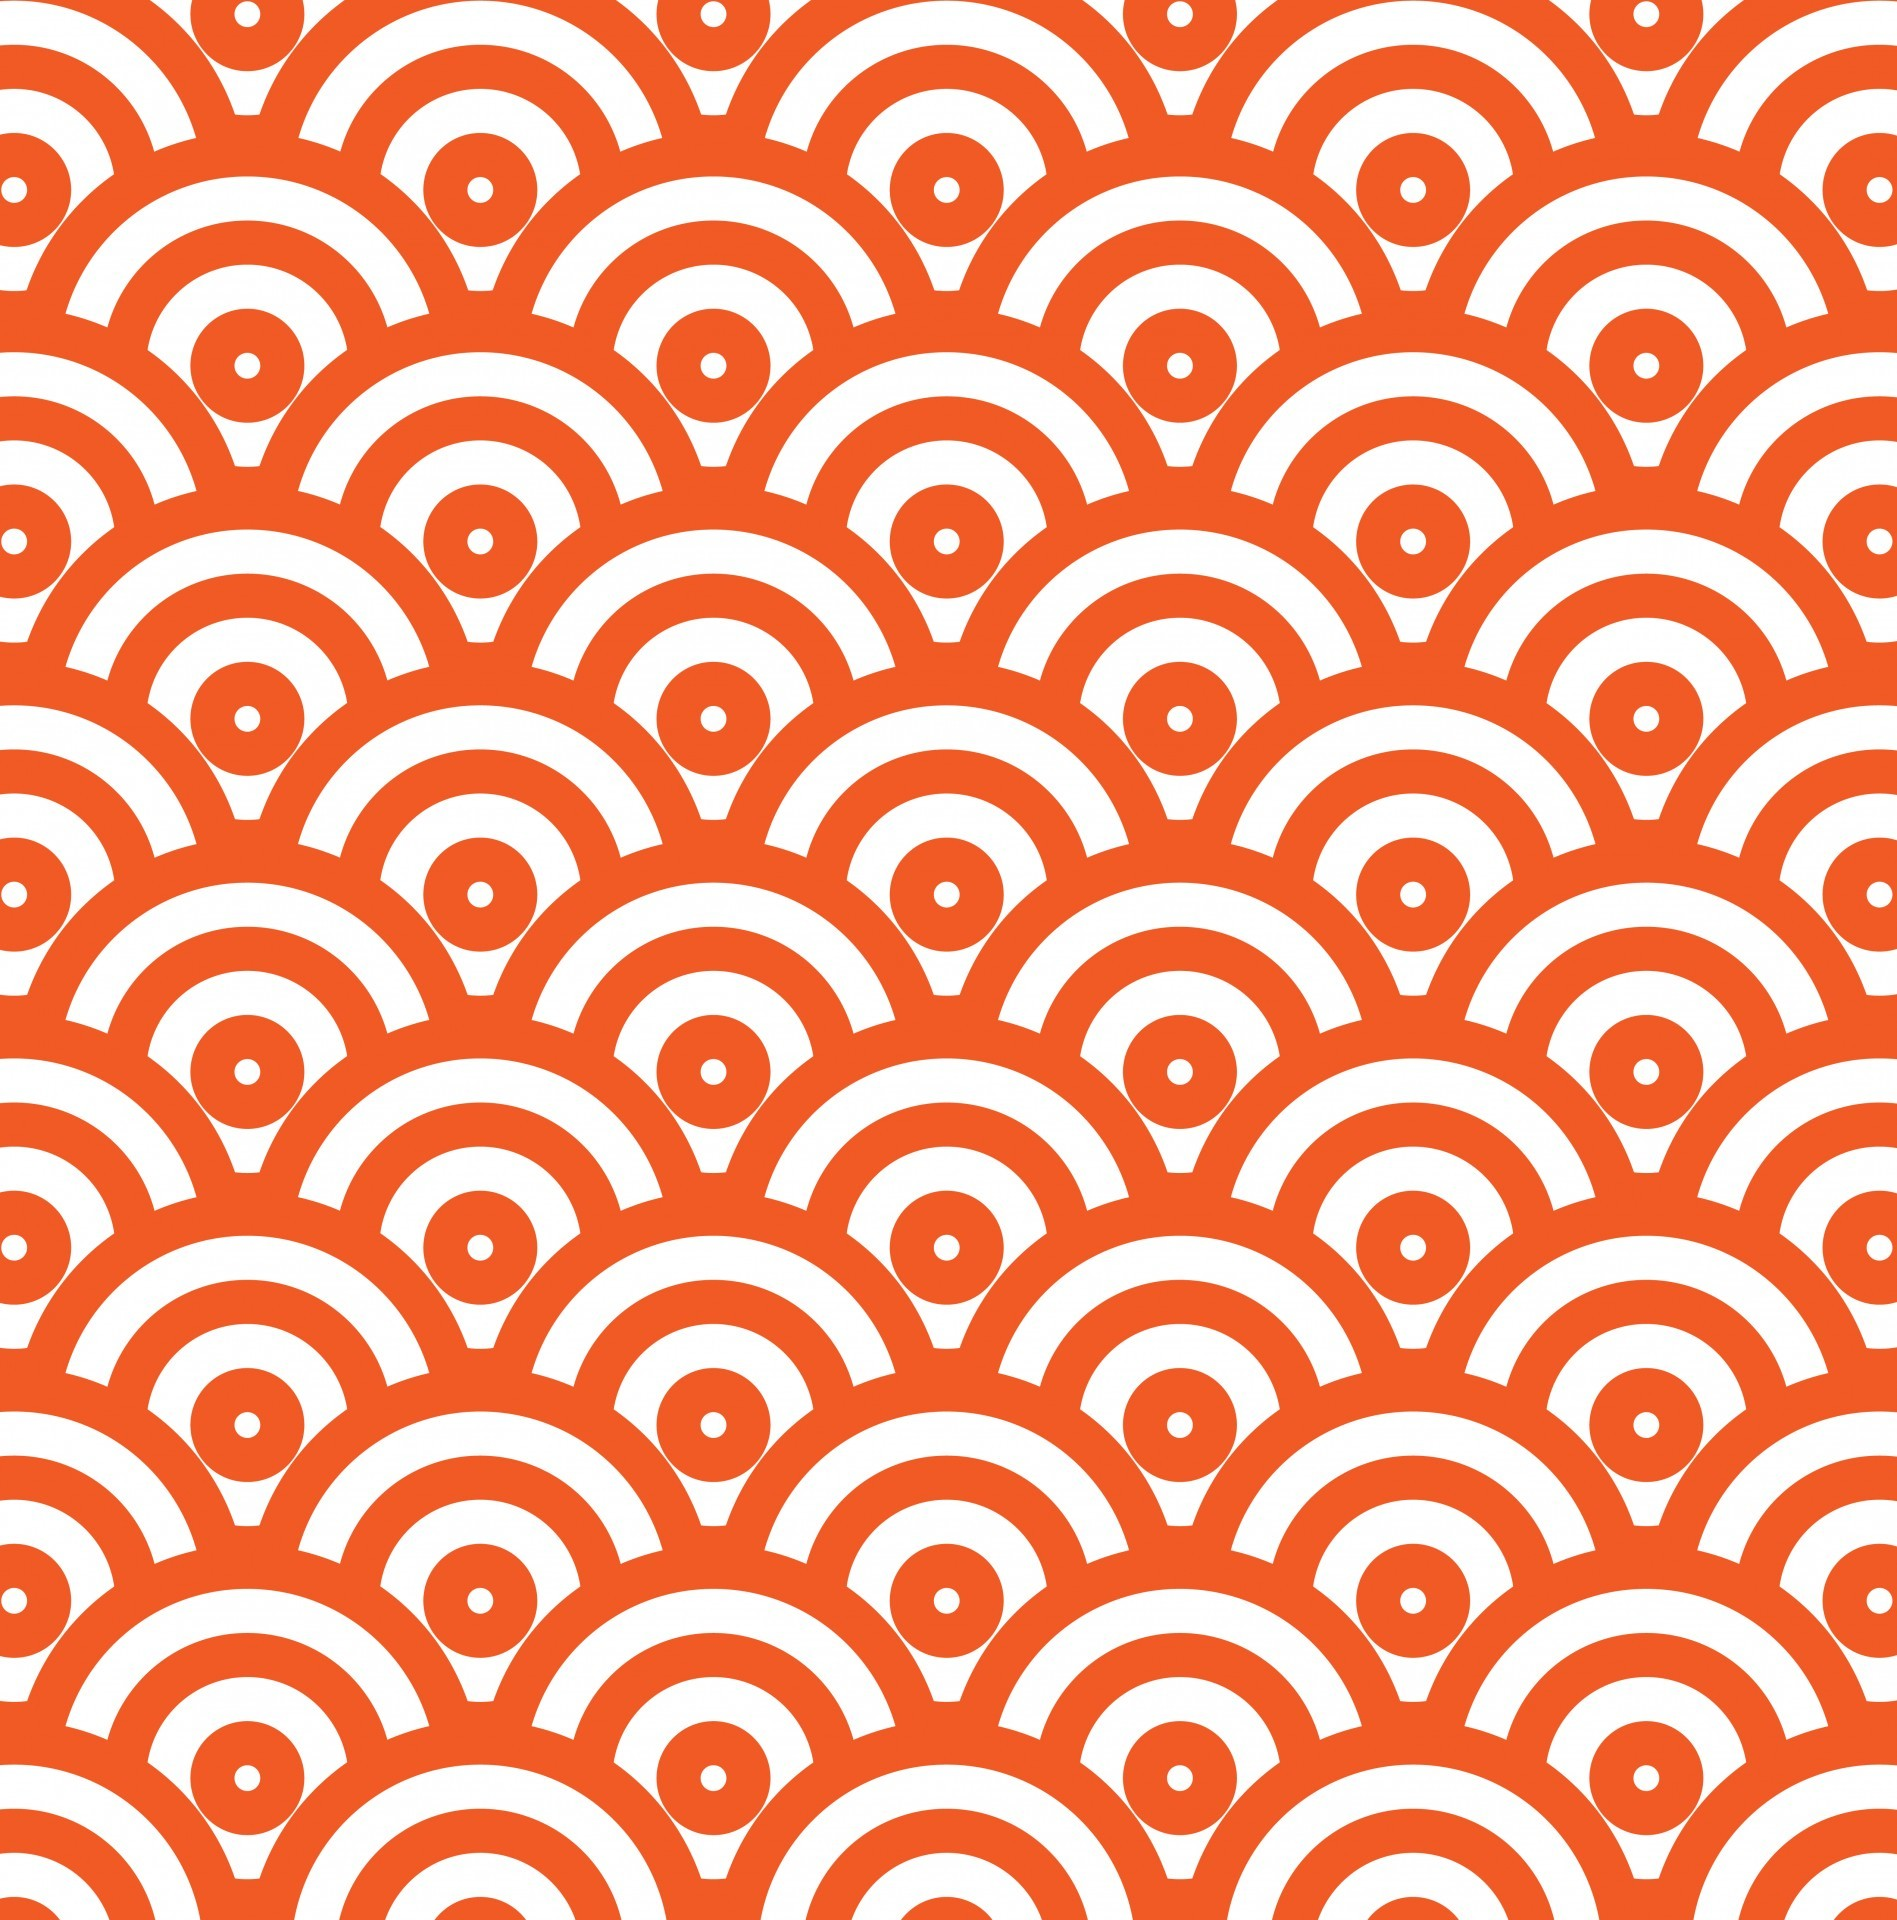 Res: 1897x1920, Japanese Wave Pattern Wallpaper